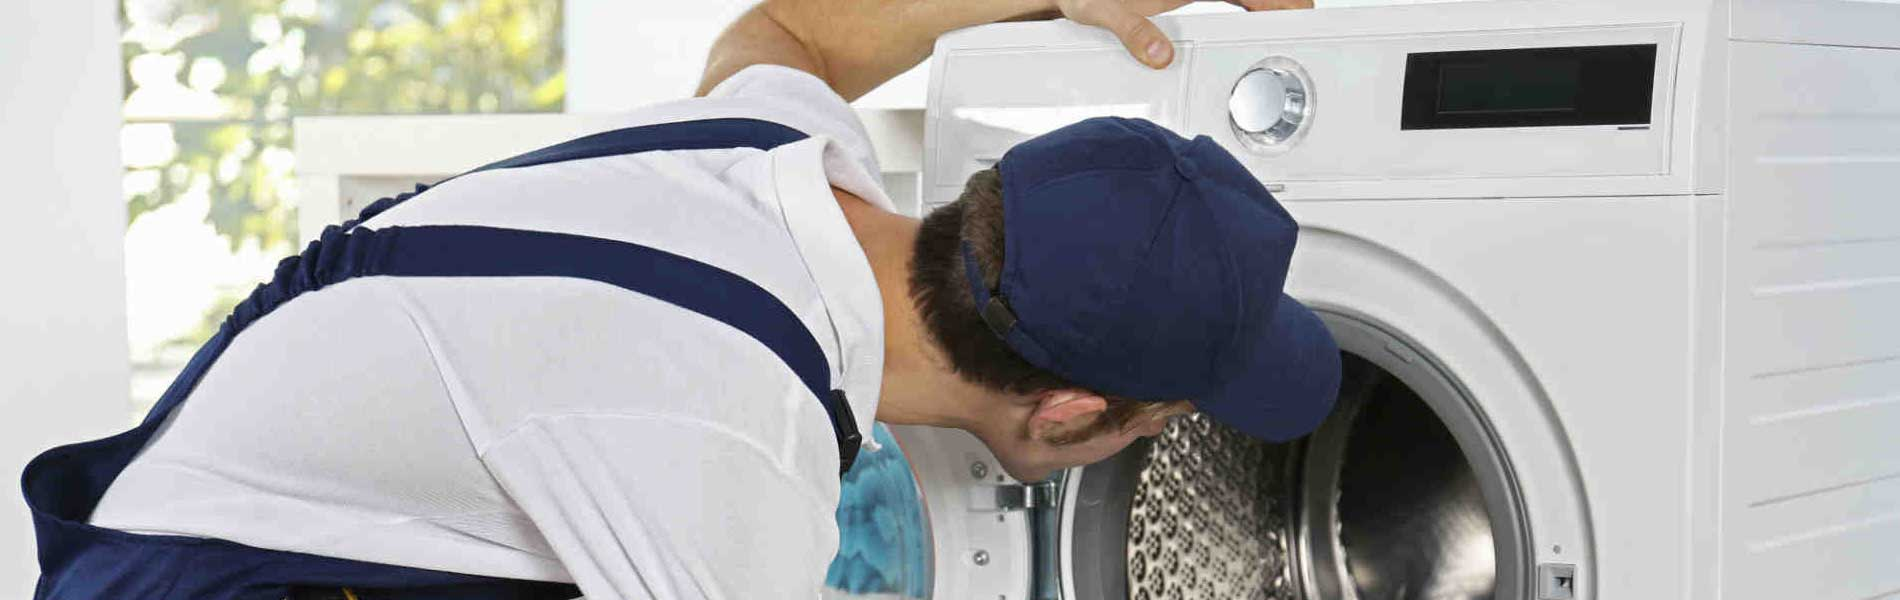 Whirlpool Washing Machine Service in kandanchavadi